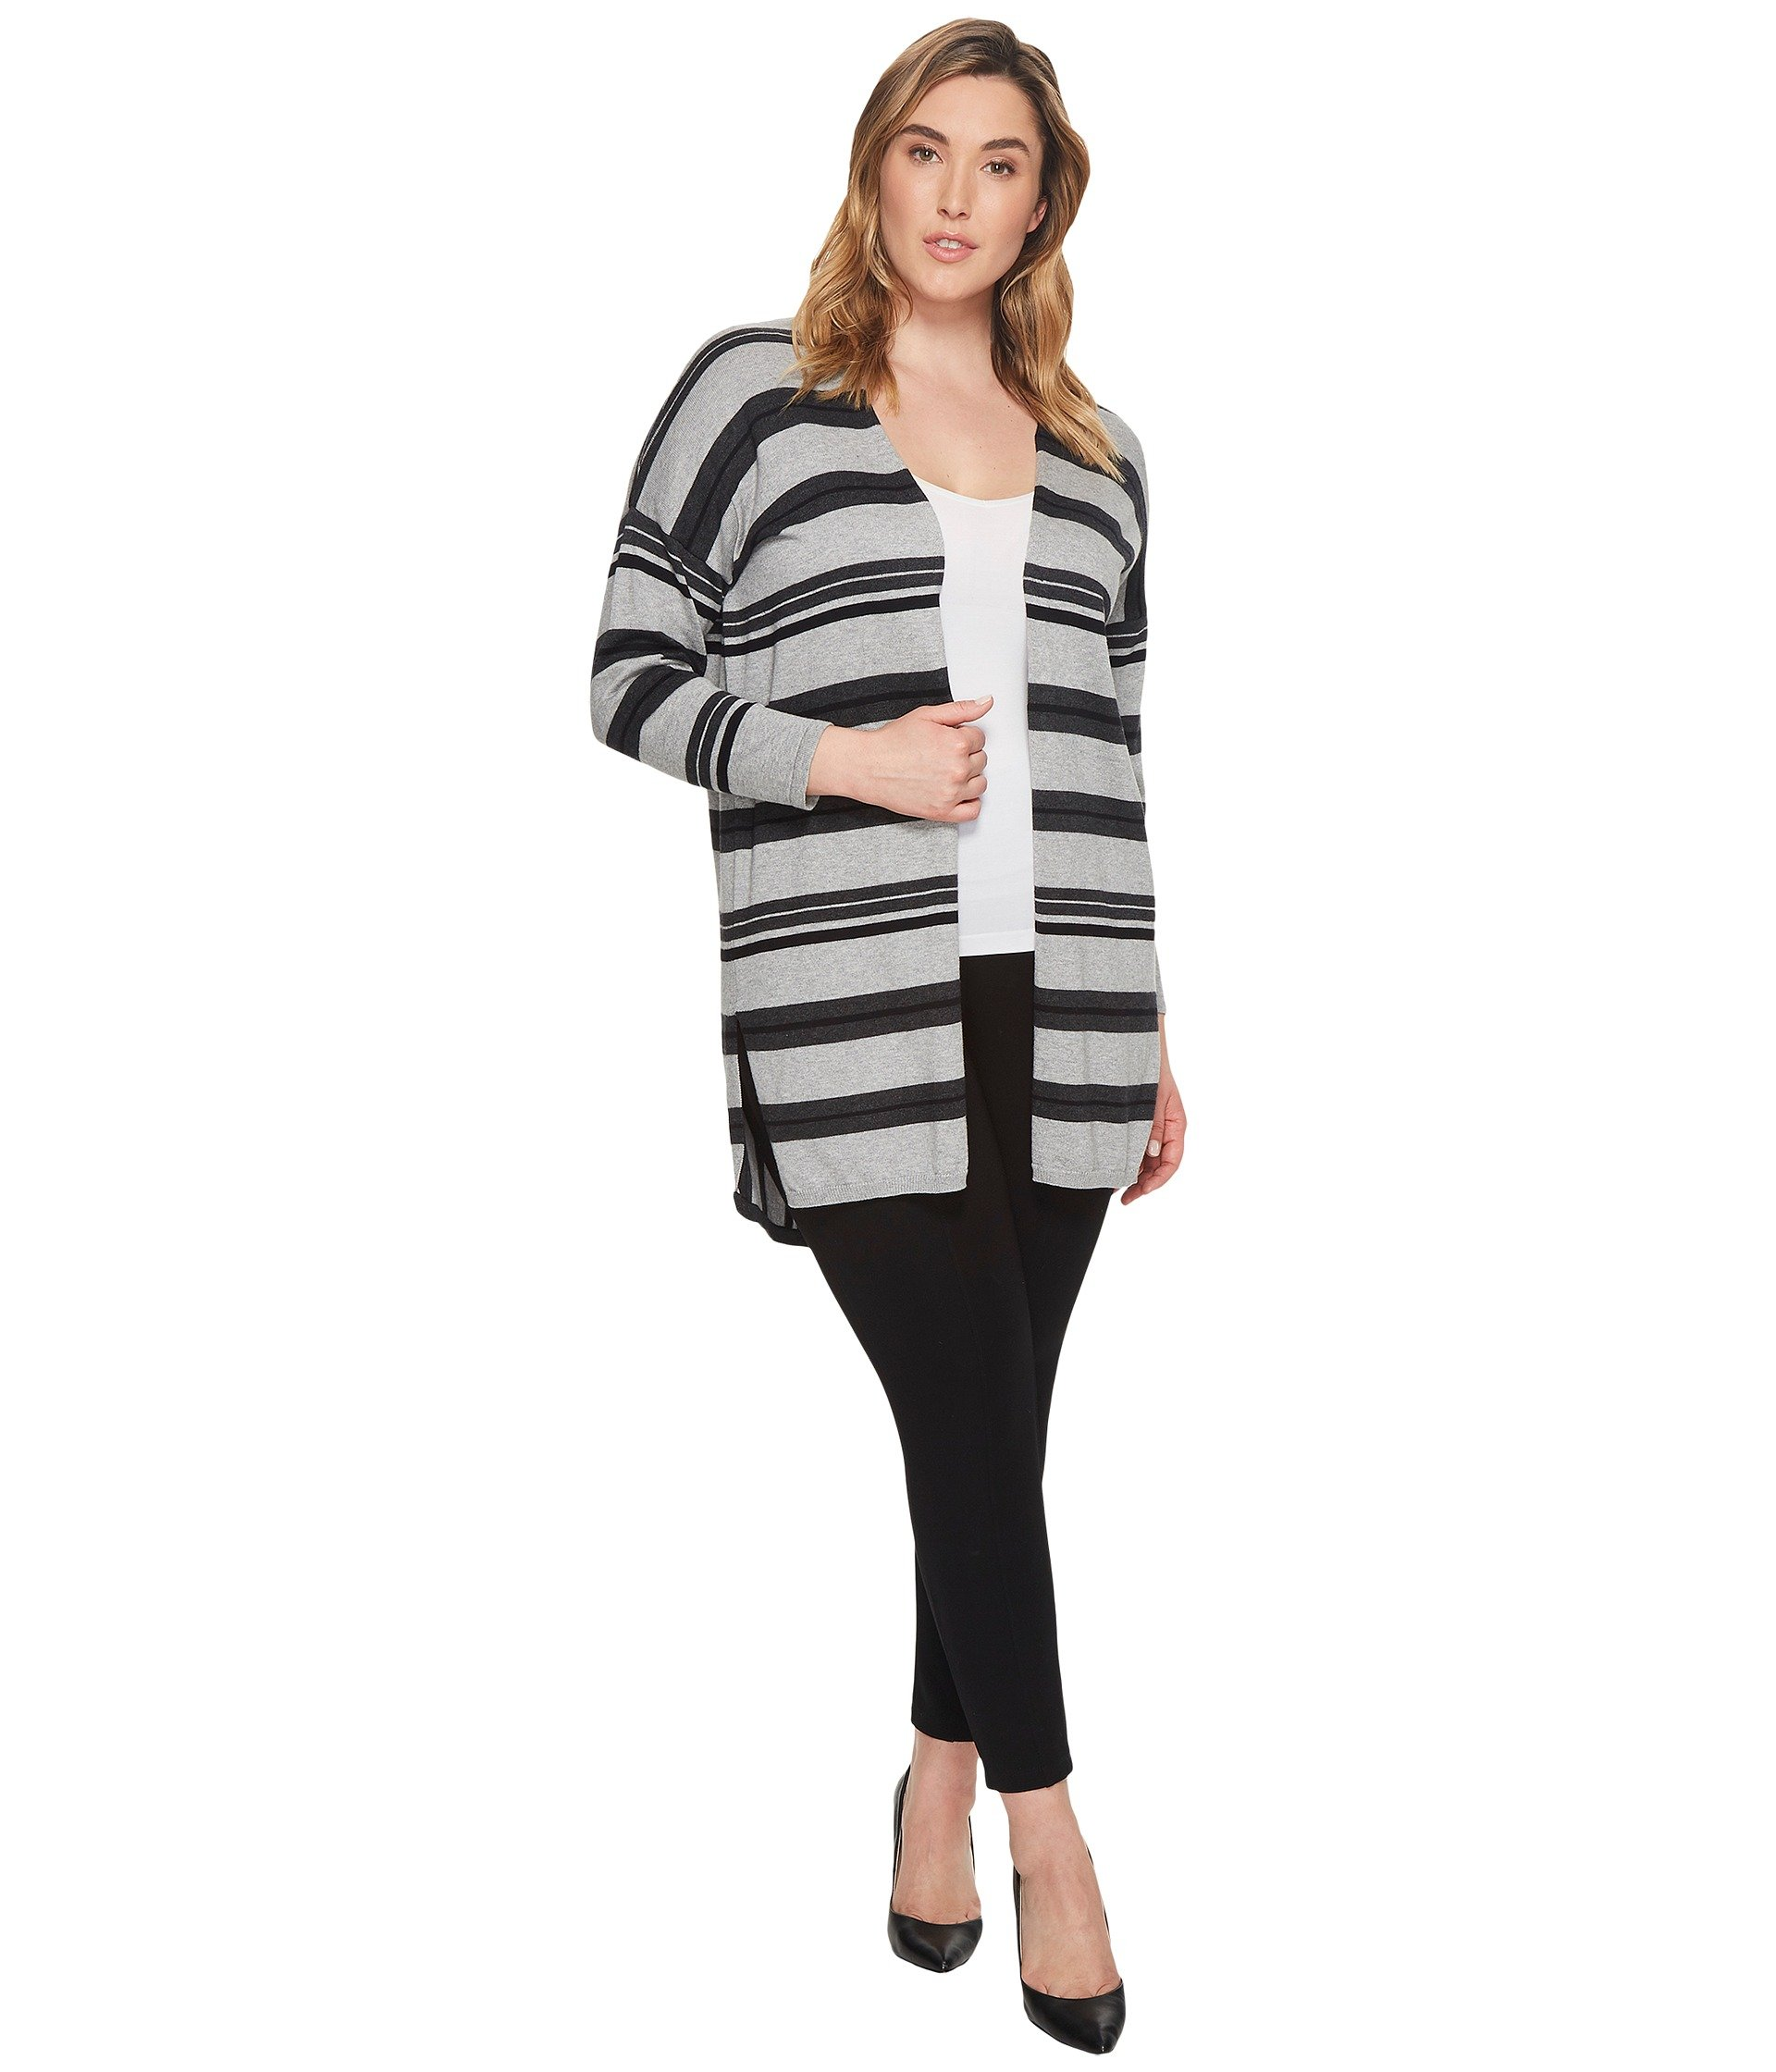 Saco para Mujer Vince Camuto Specialty Size Plus Size Long Sleeve Color Blocked Striped Open Front Cardi  + Vince Camuto en VeoyCompro.net